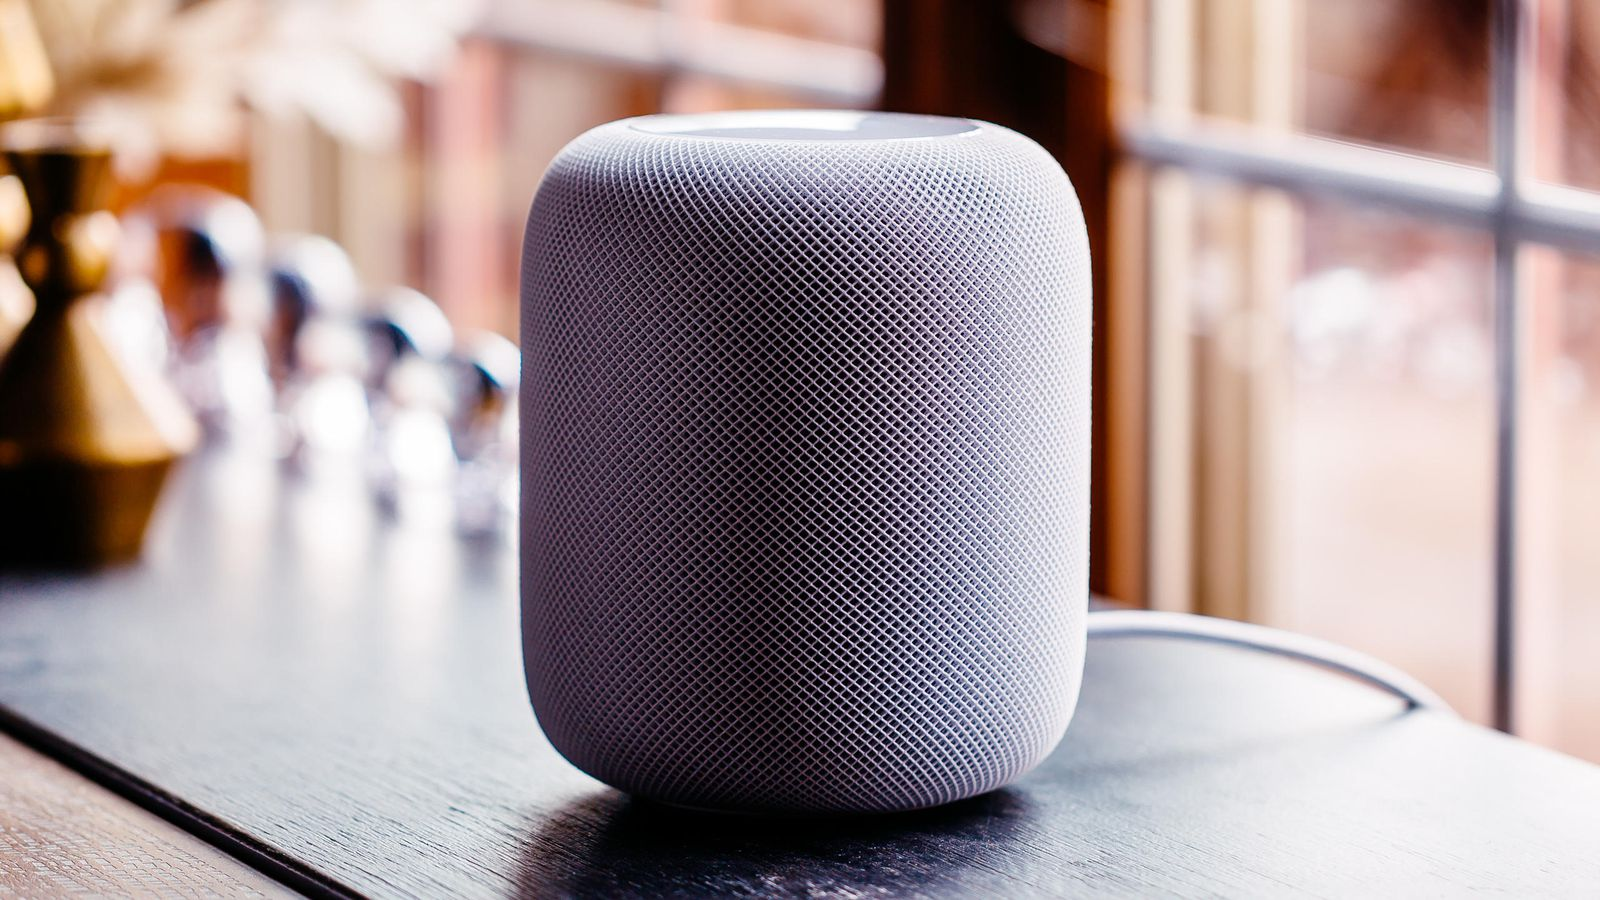 Apple has started selling refurbished HomePod